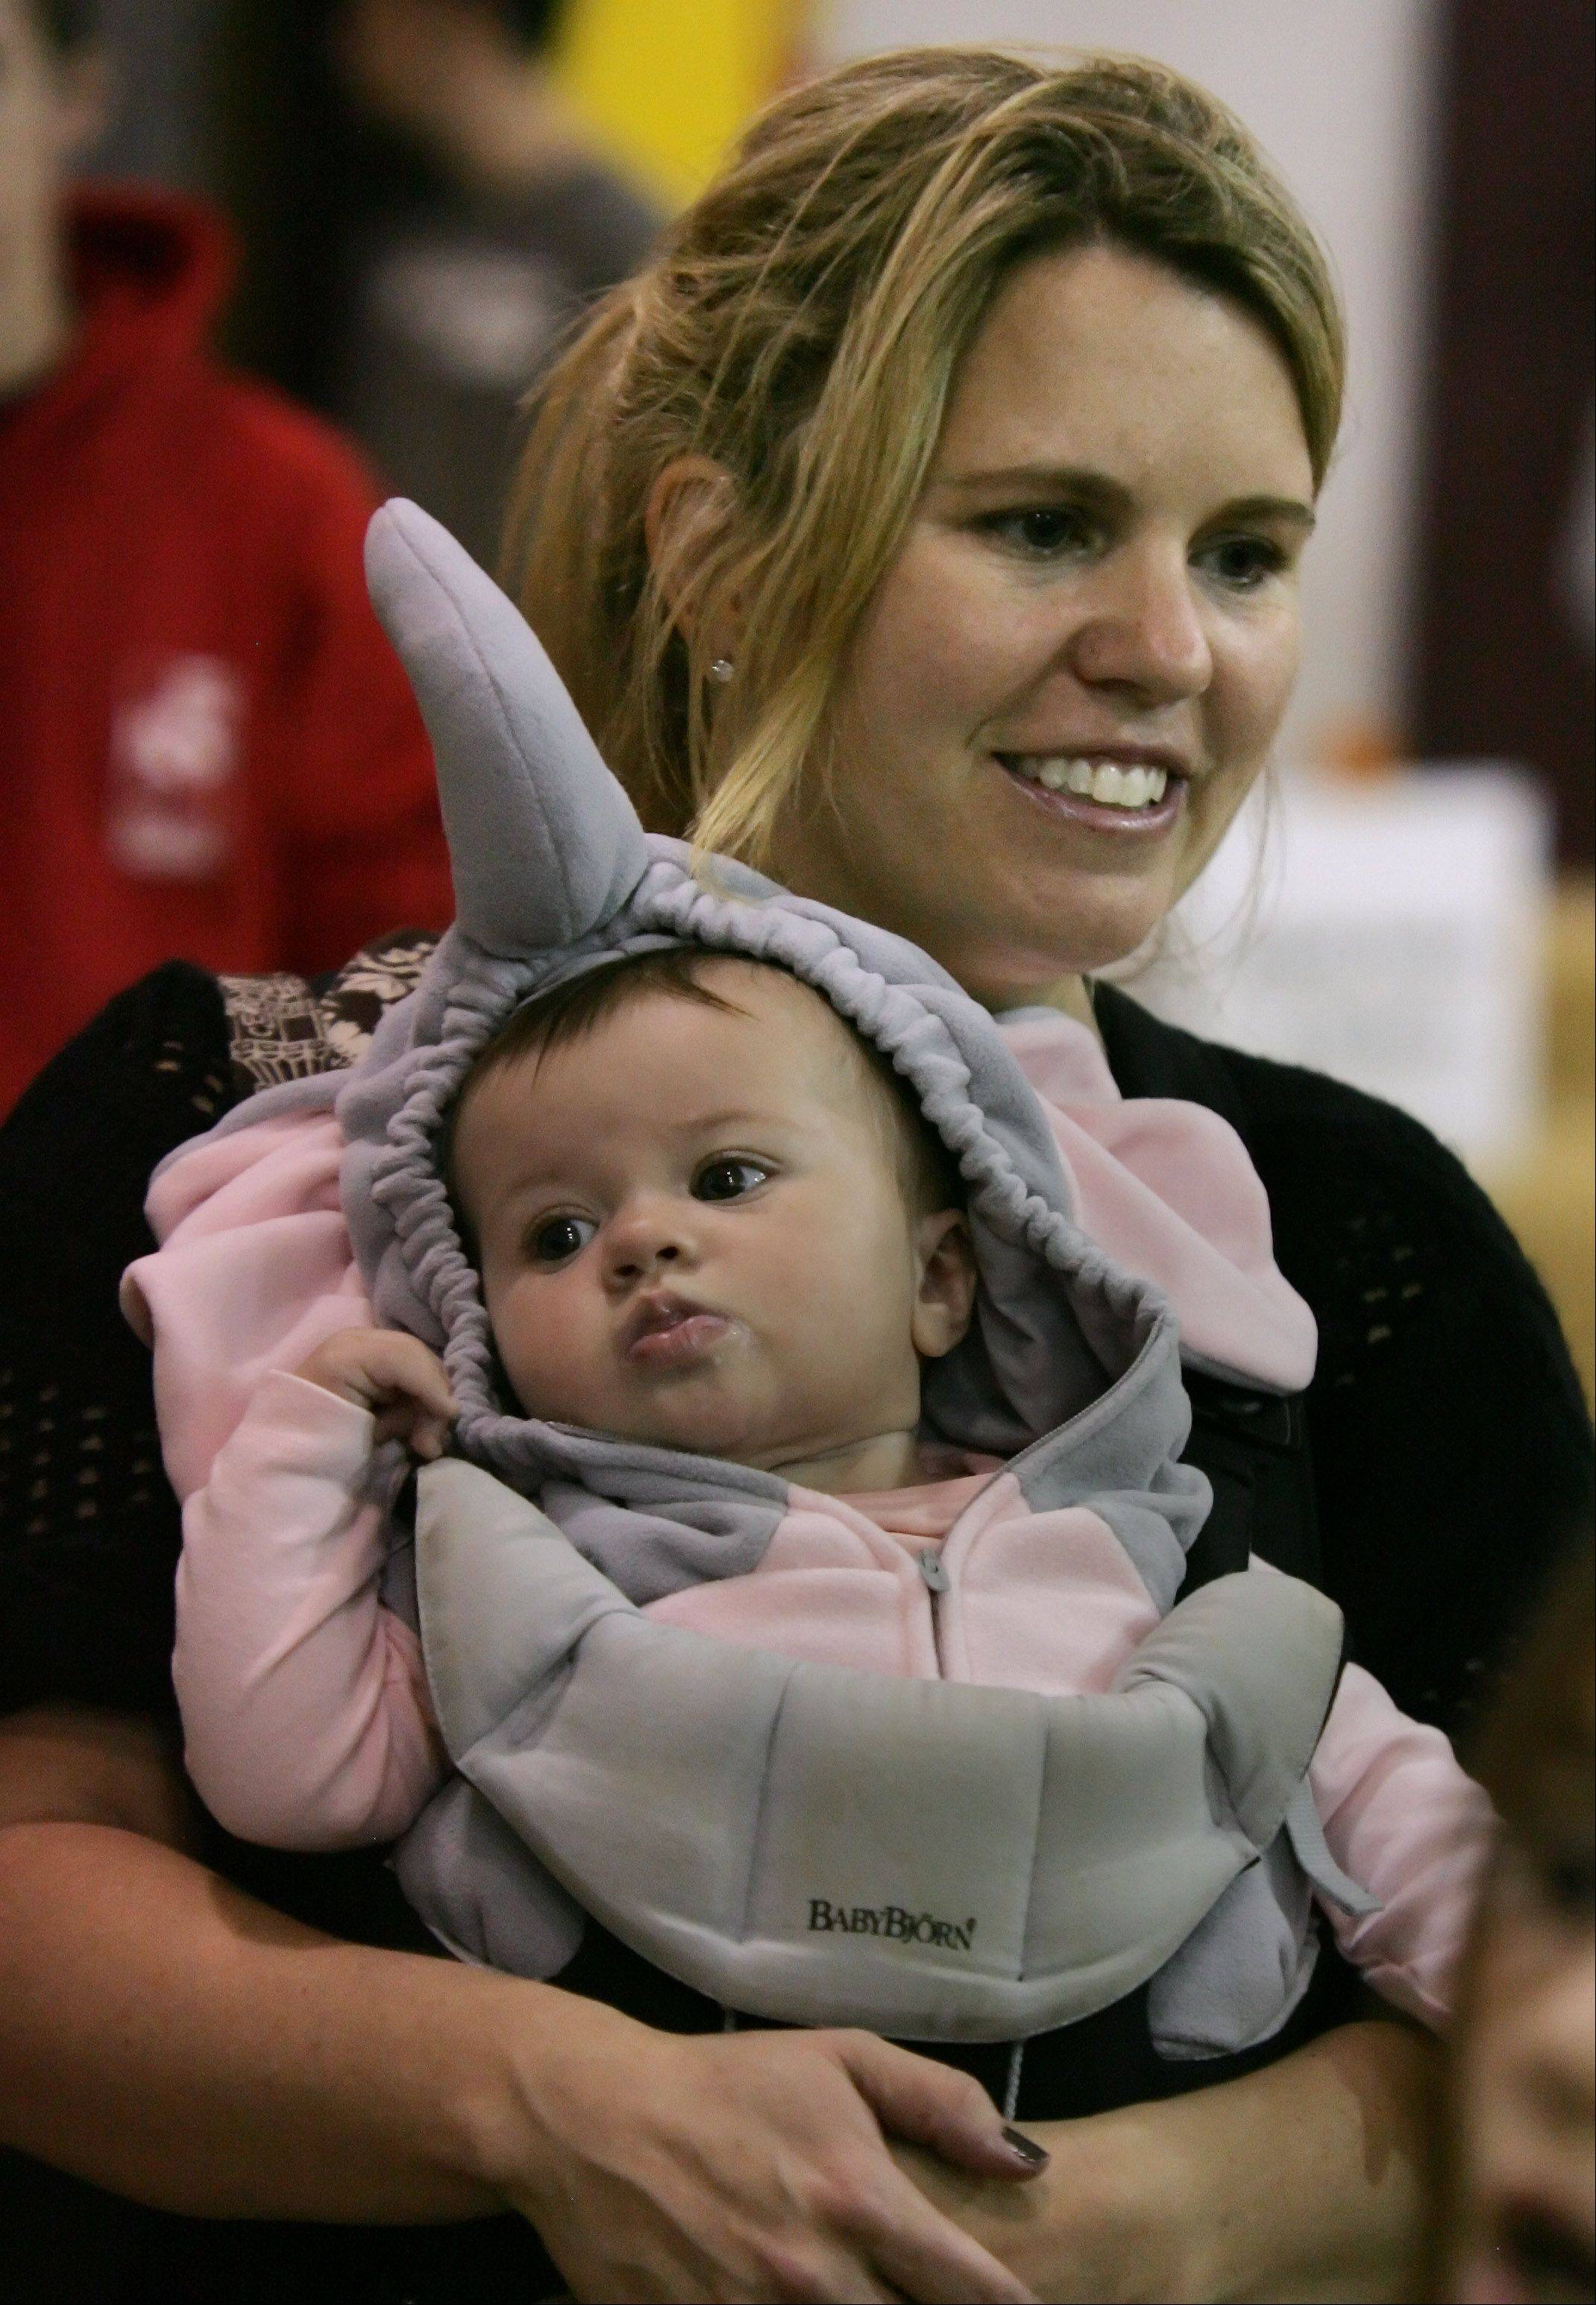 Meaghen Dahm holds five-month-old Emerson, dressed as an elephant, during the 5th Annual Pumpkin Fest Thursday at the Grayslake Recreation Center. The Halloween event featured costumed characters, Halloween crafts, games, and trick or treats.